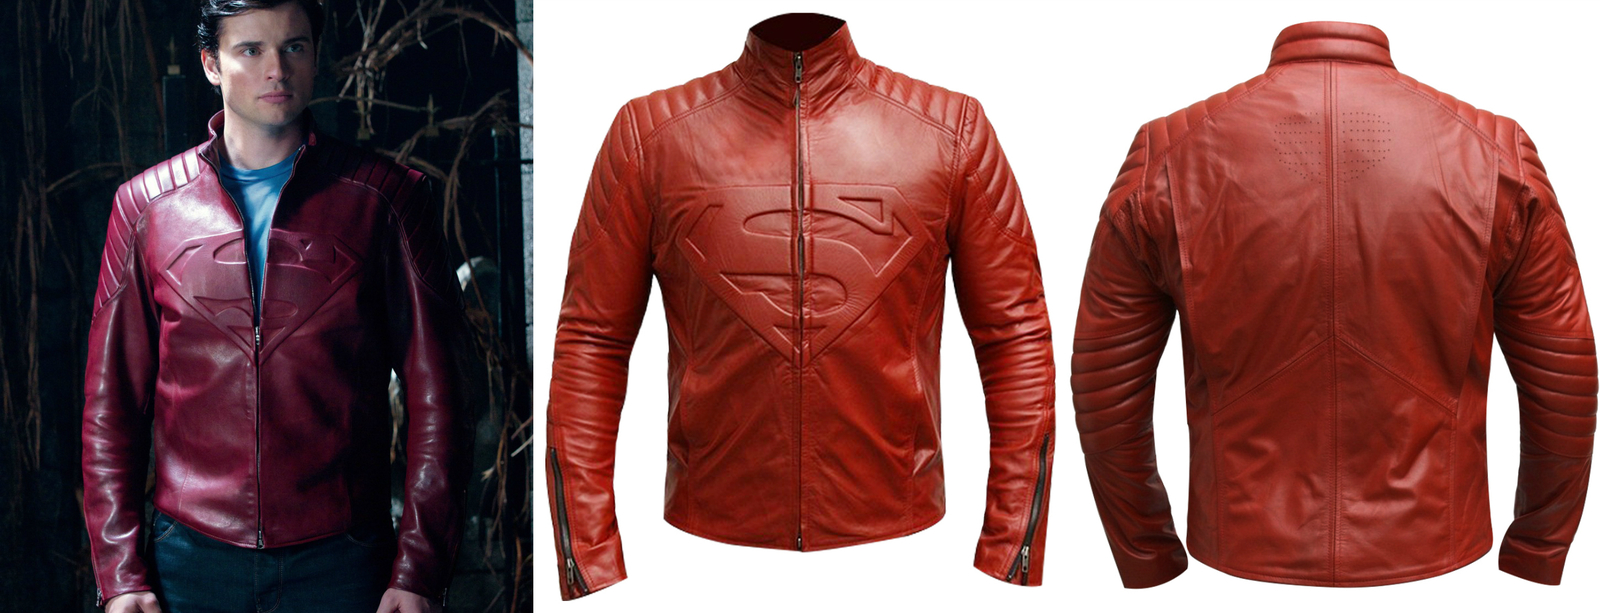 f68c74a9a Tom Welling Superman Red Leather Jacket